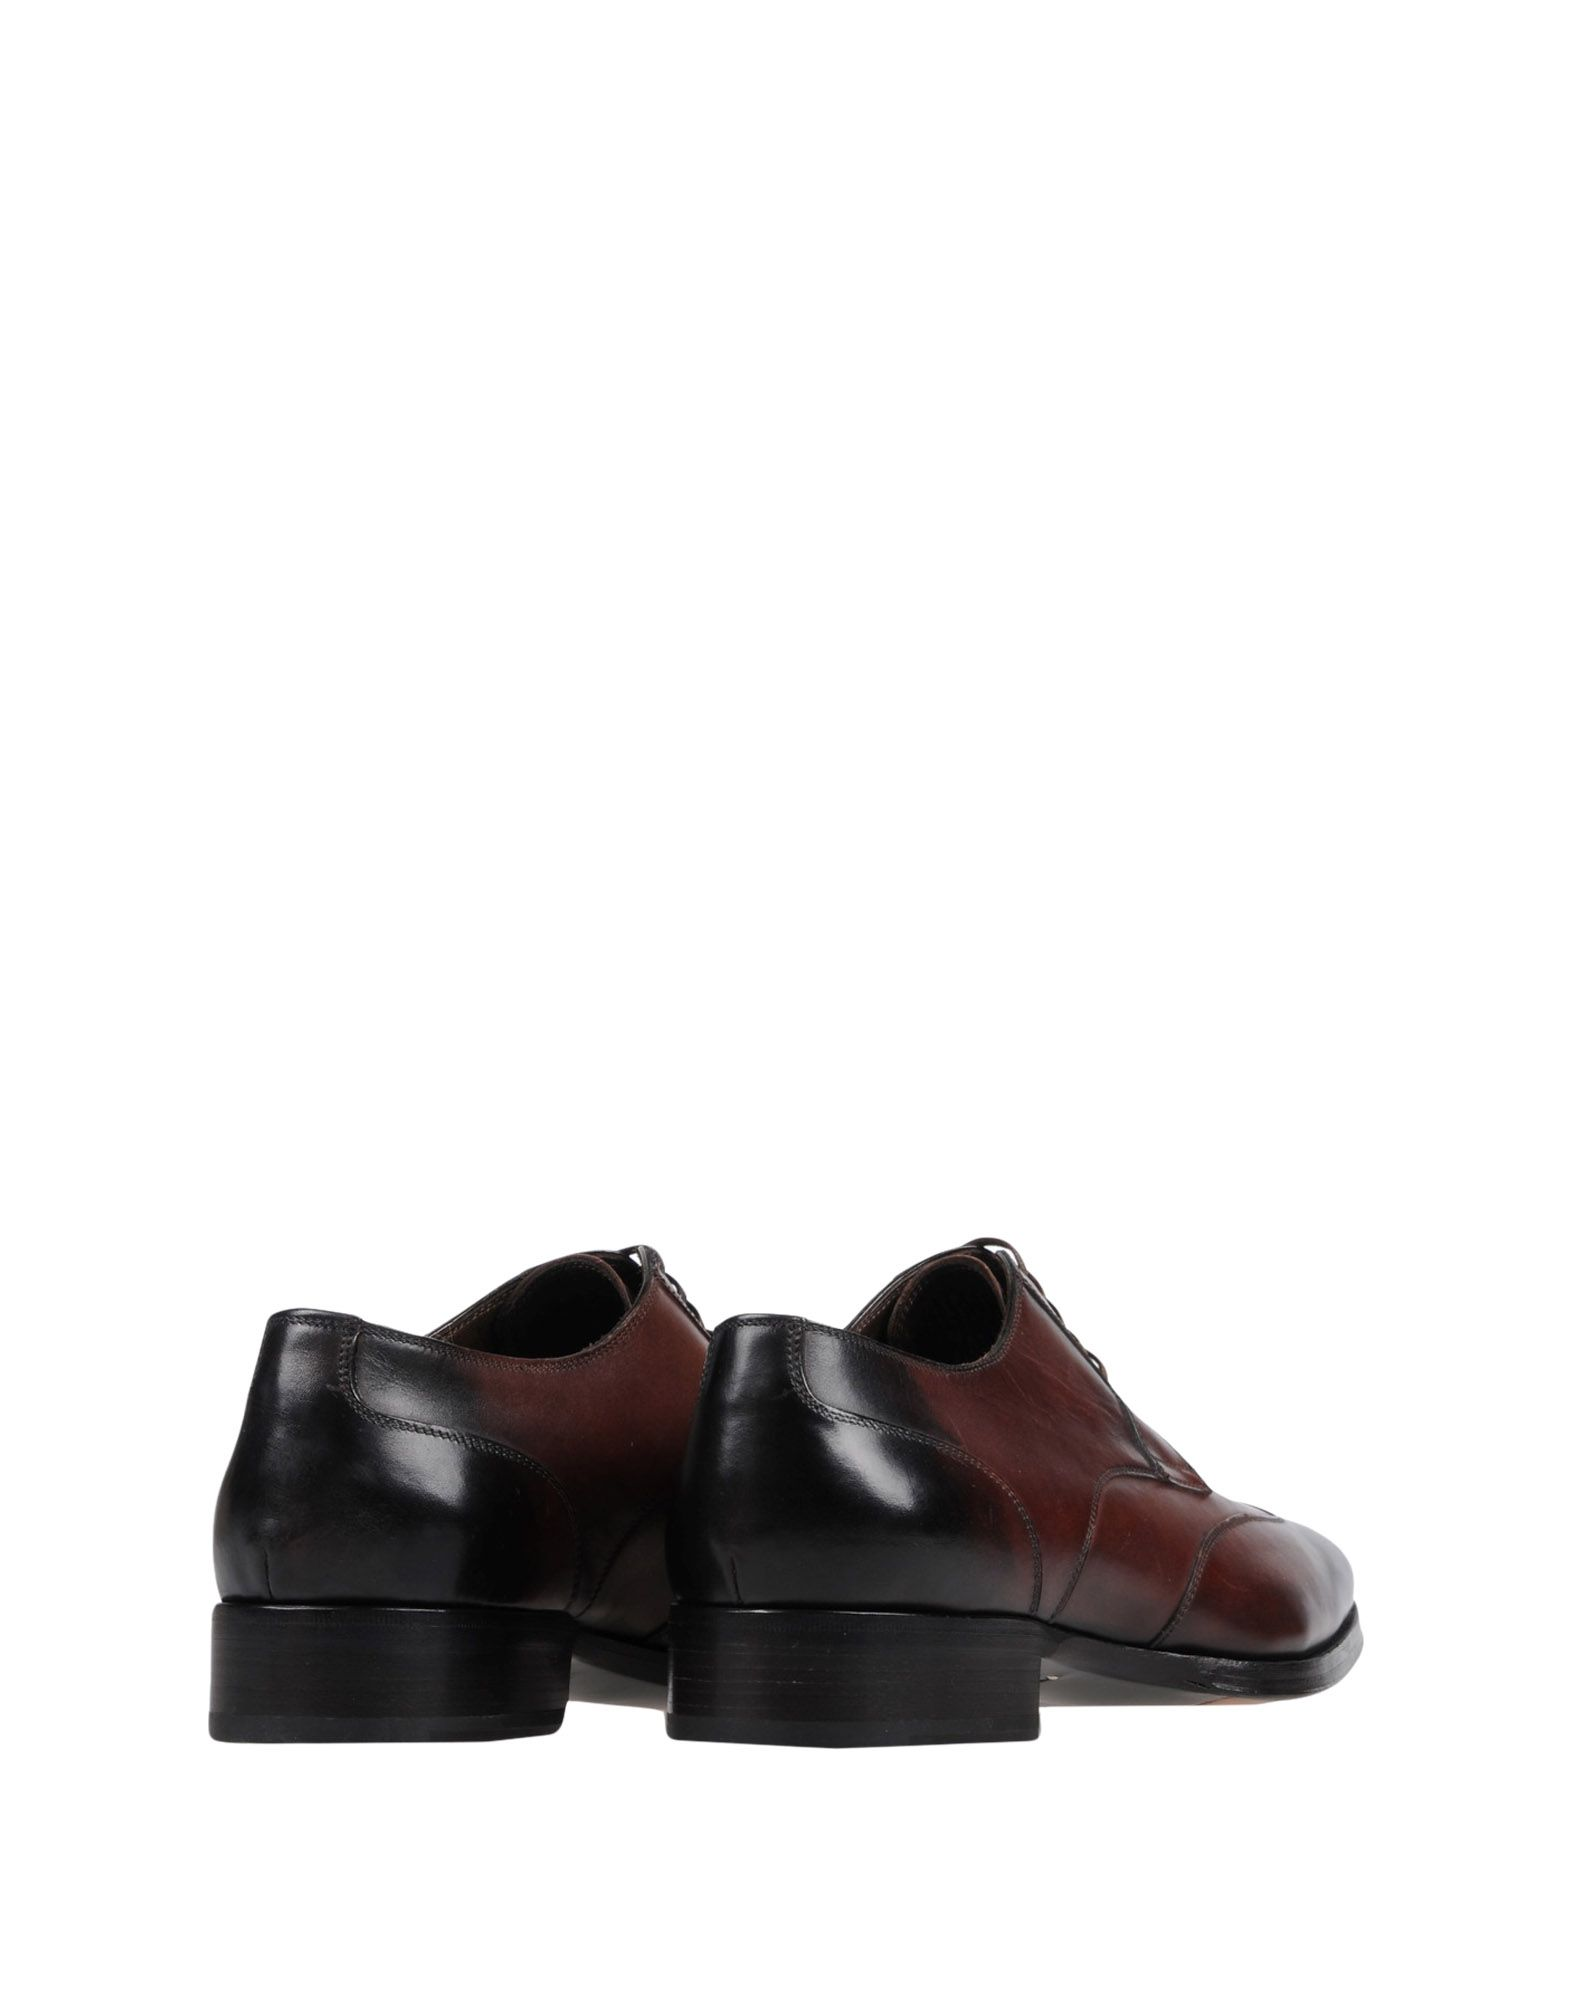 Chaussures À Lacets Tom Ford Femme - Chaussures À Lacets Tom Ford sur